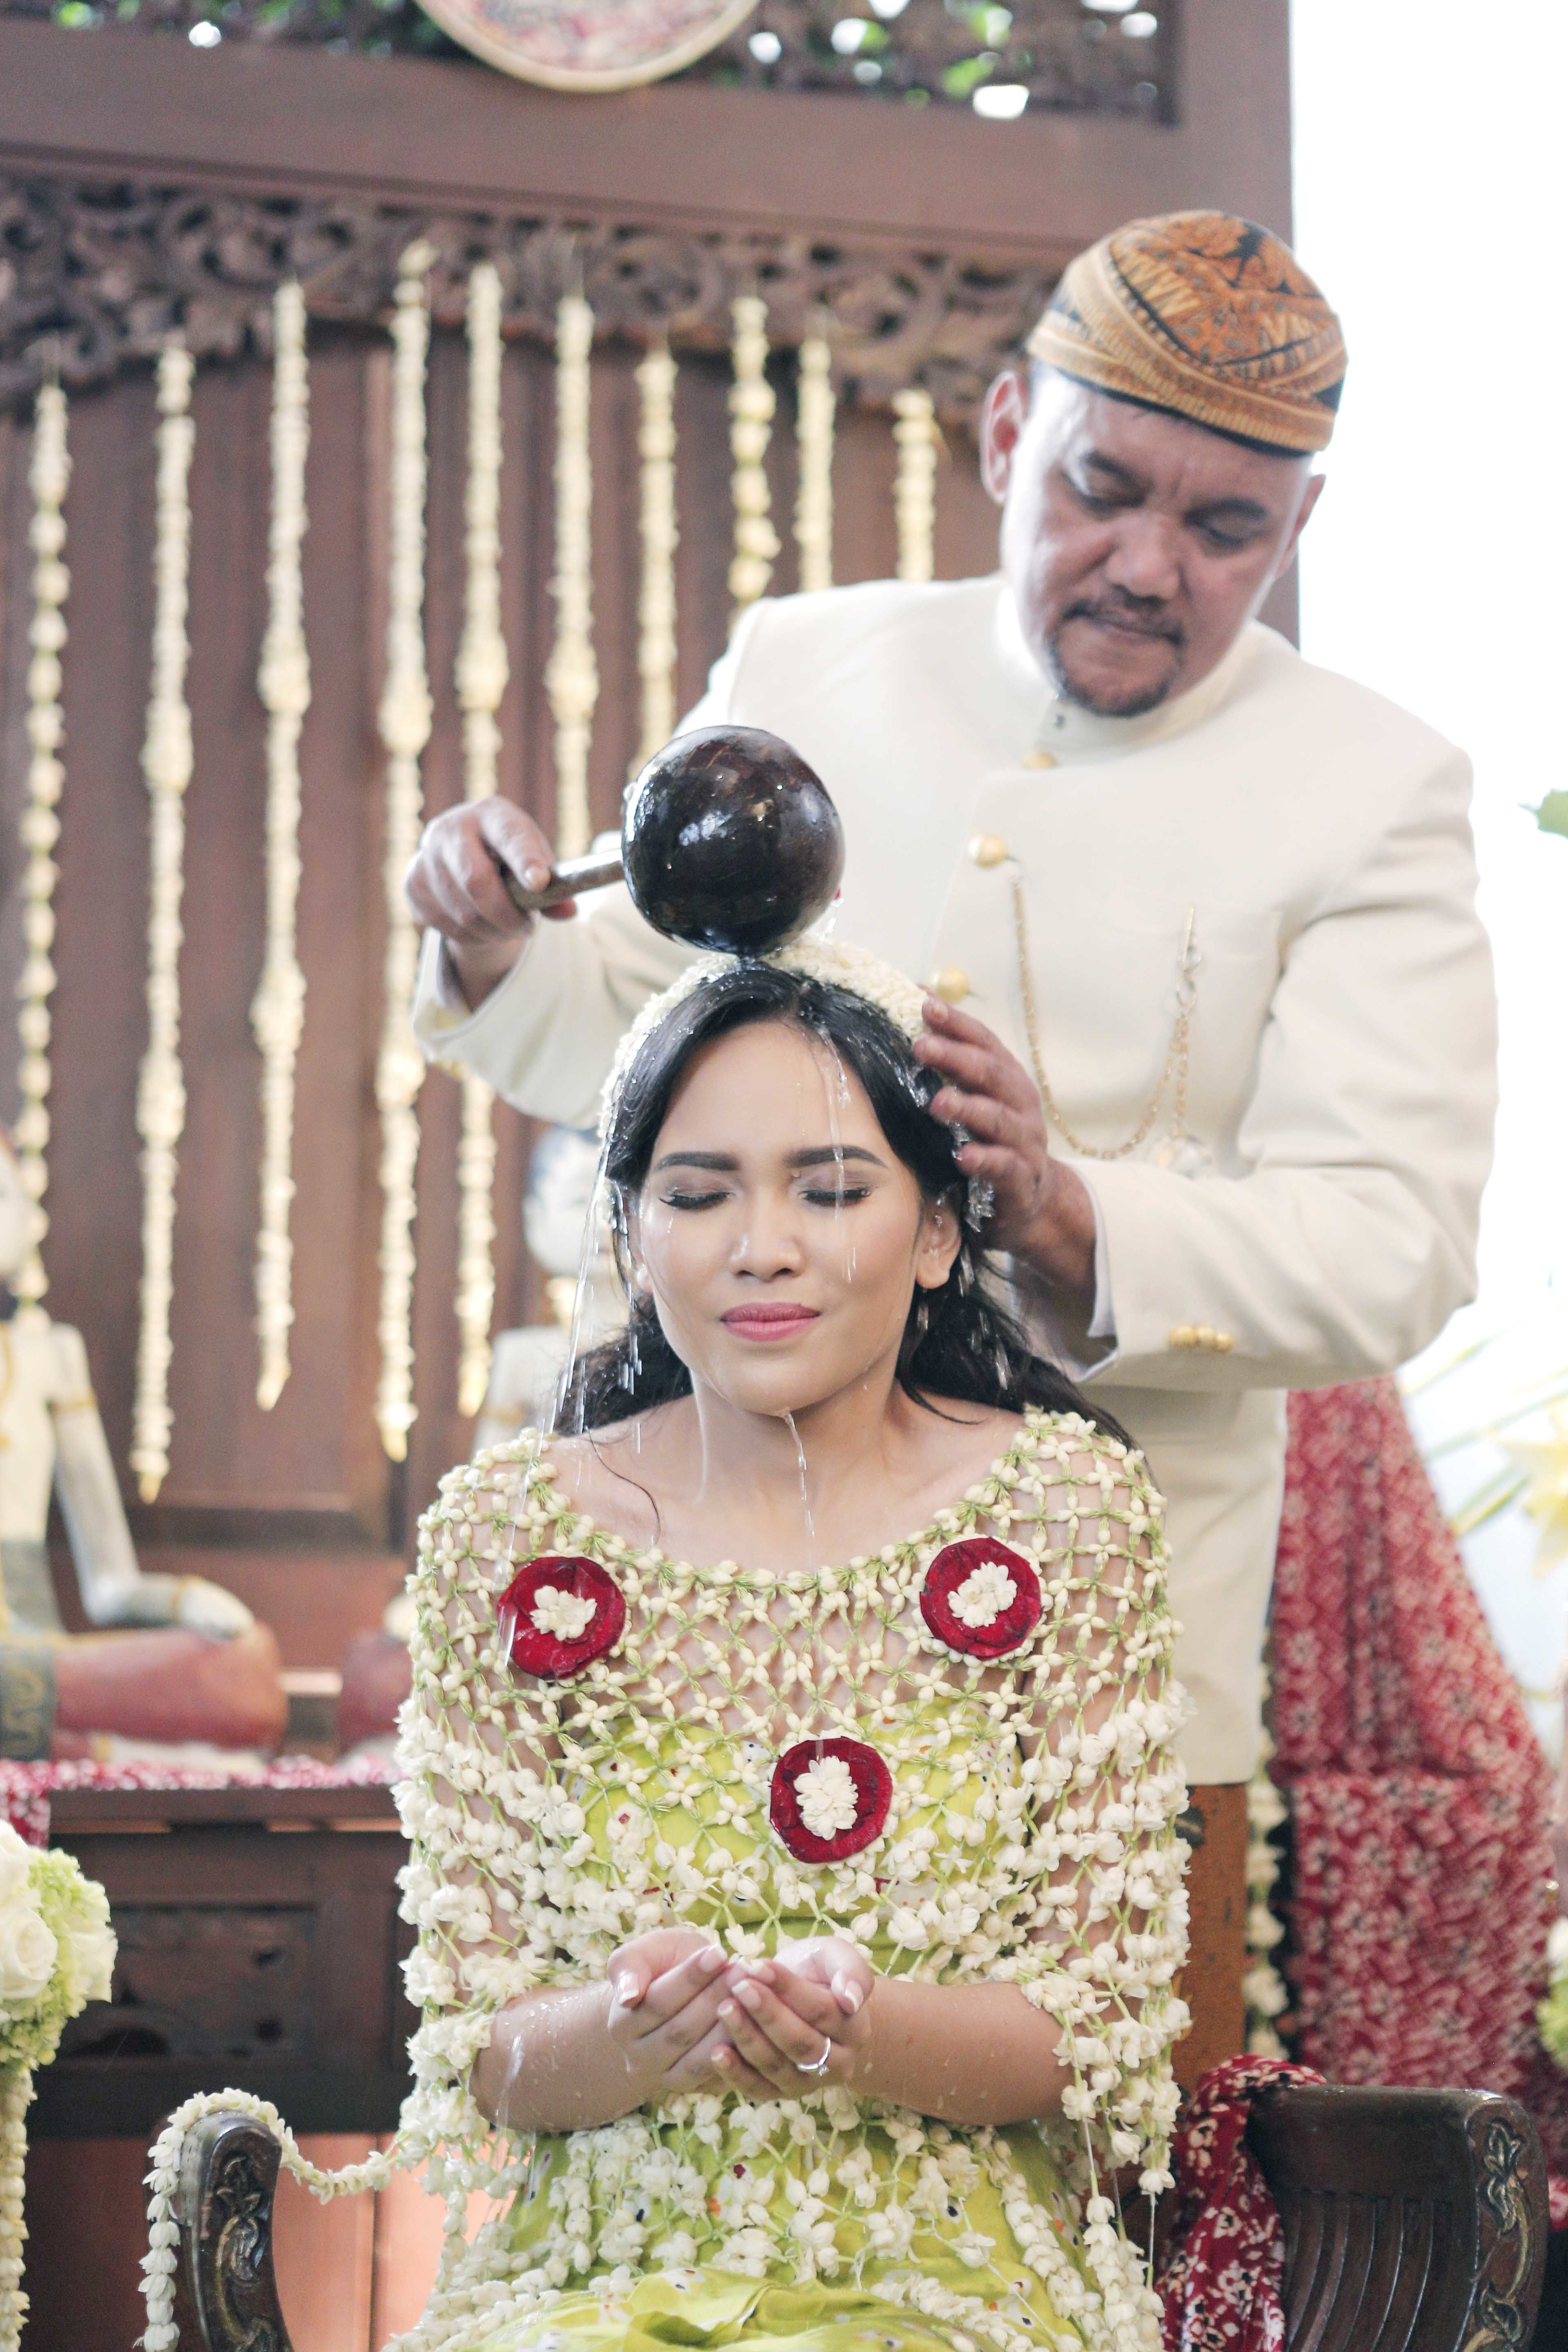 Traditional Indonesian weddings never fail to impress. Its symbolic meanings and beauty exudes nothing less than rich cultural feel. Take a look at the wedding of Sharin and Bayu from the lens of Soe